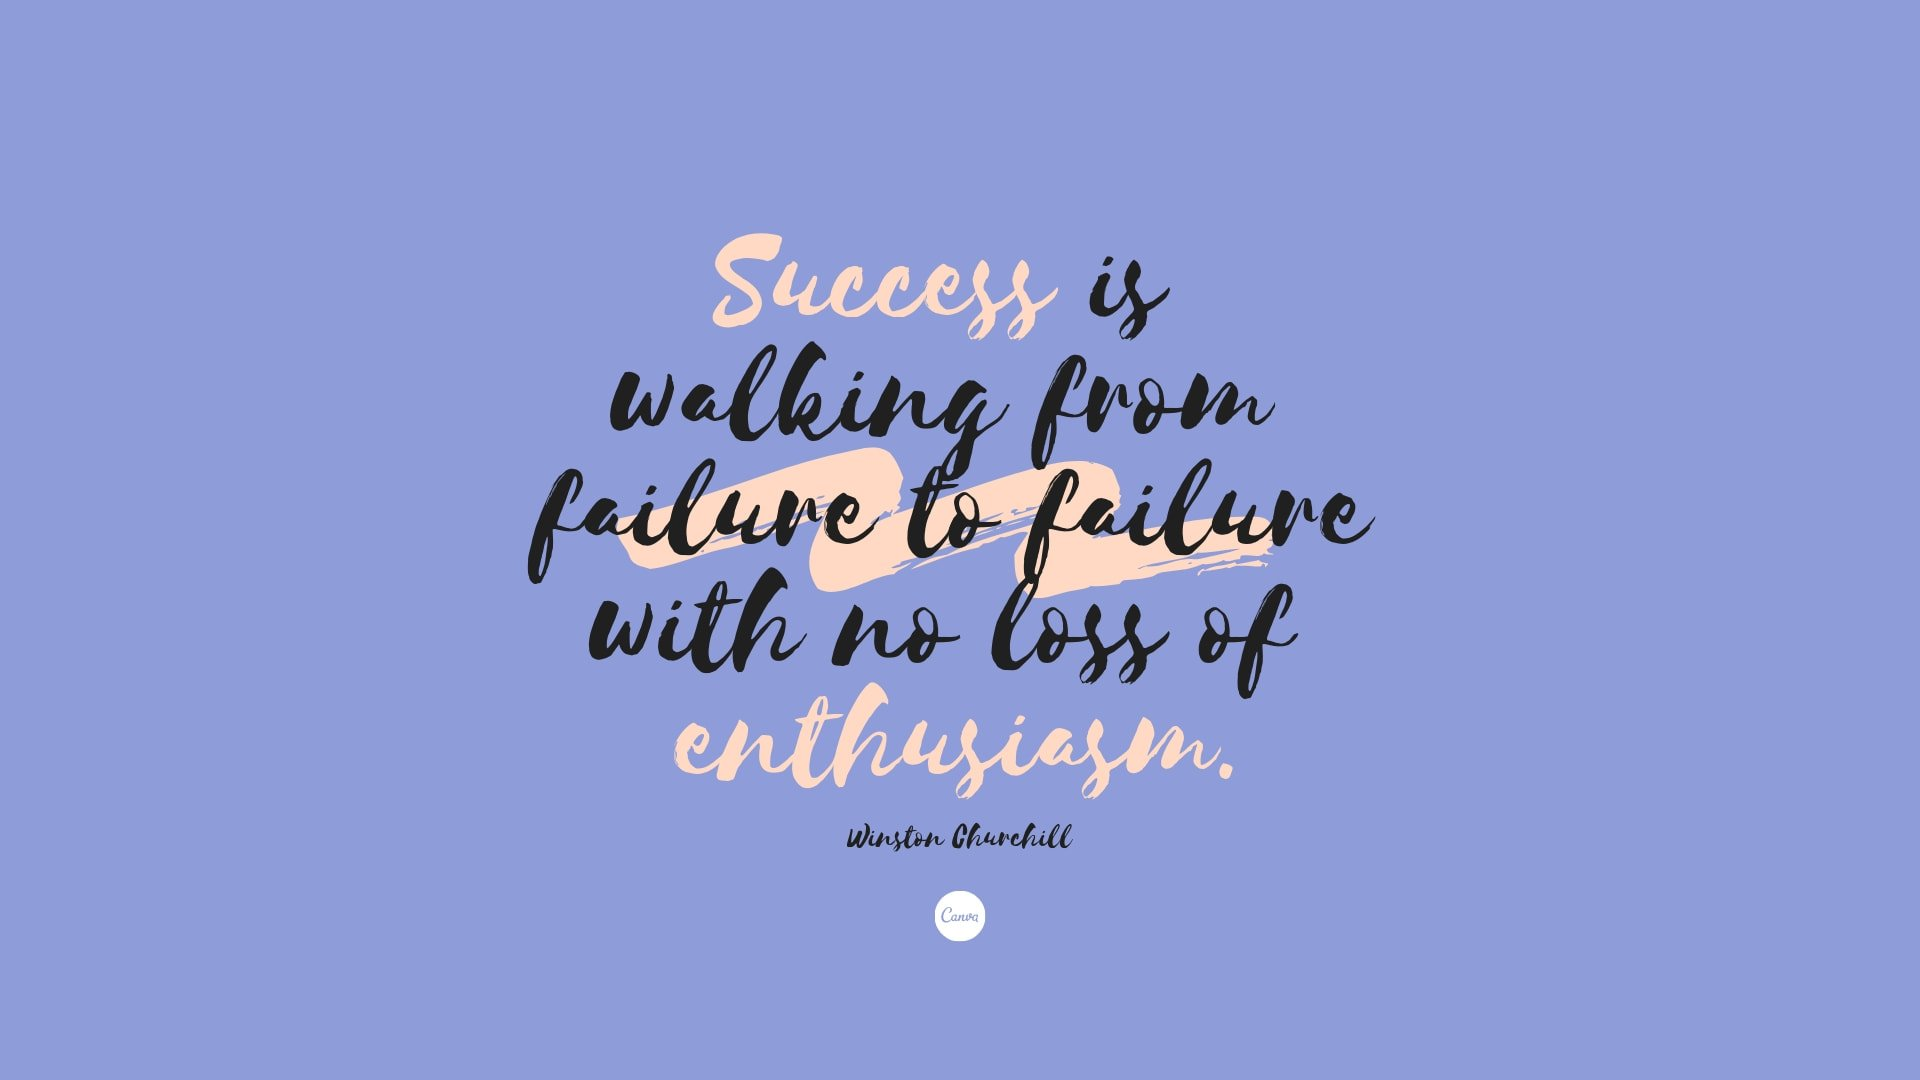 Success is walking from failure to failure with no loss of enthusiasm